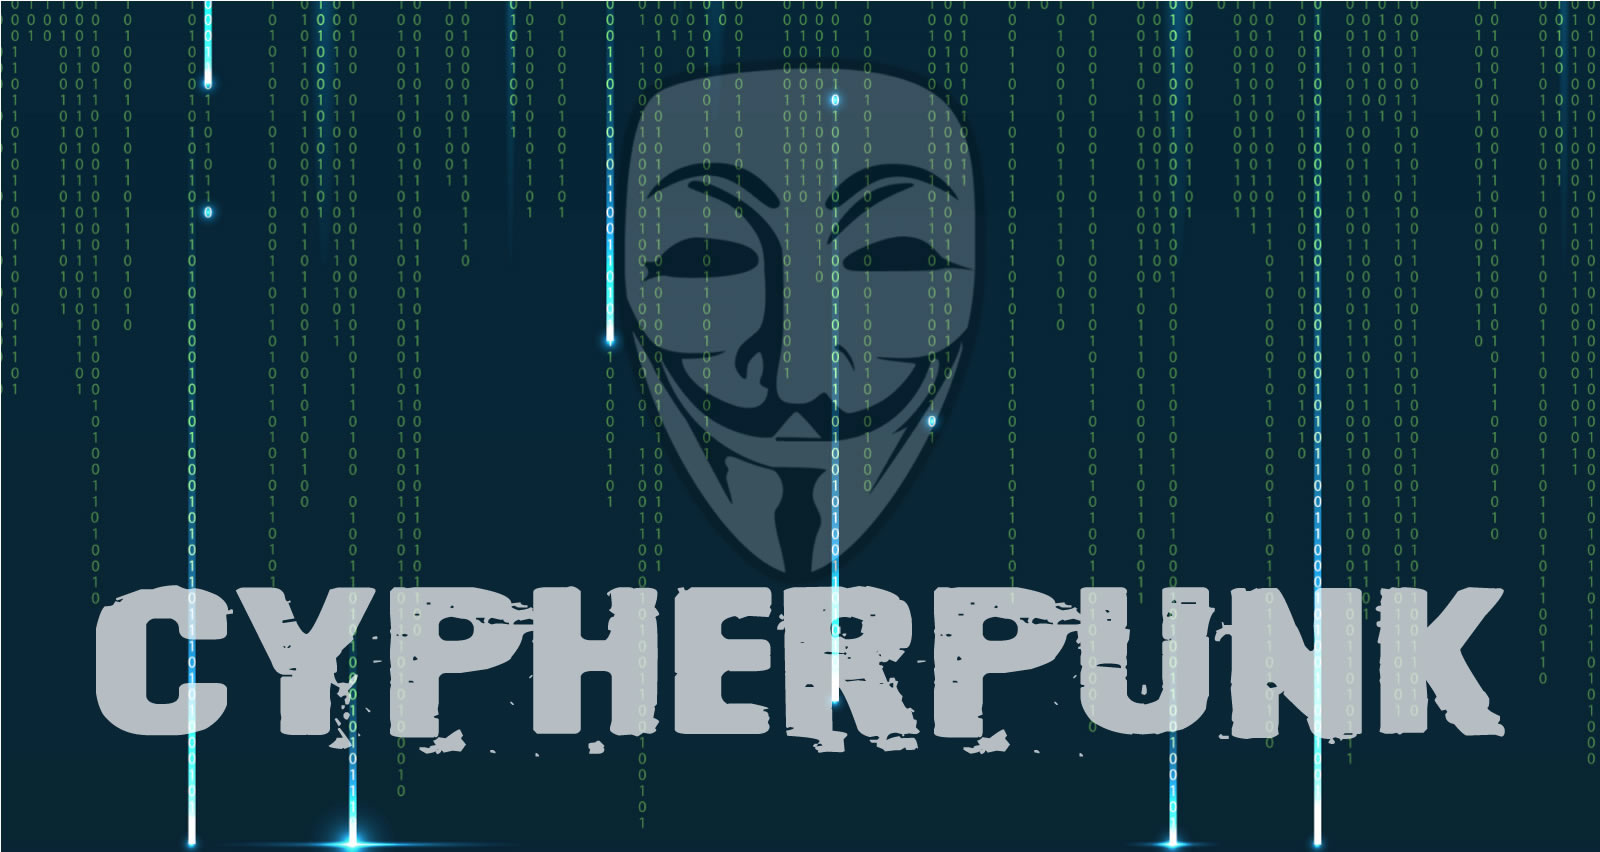 Movimiento Criptopunks (Cypherpunk)